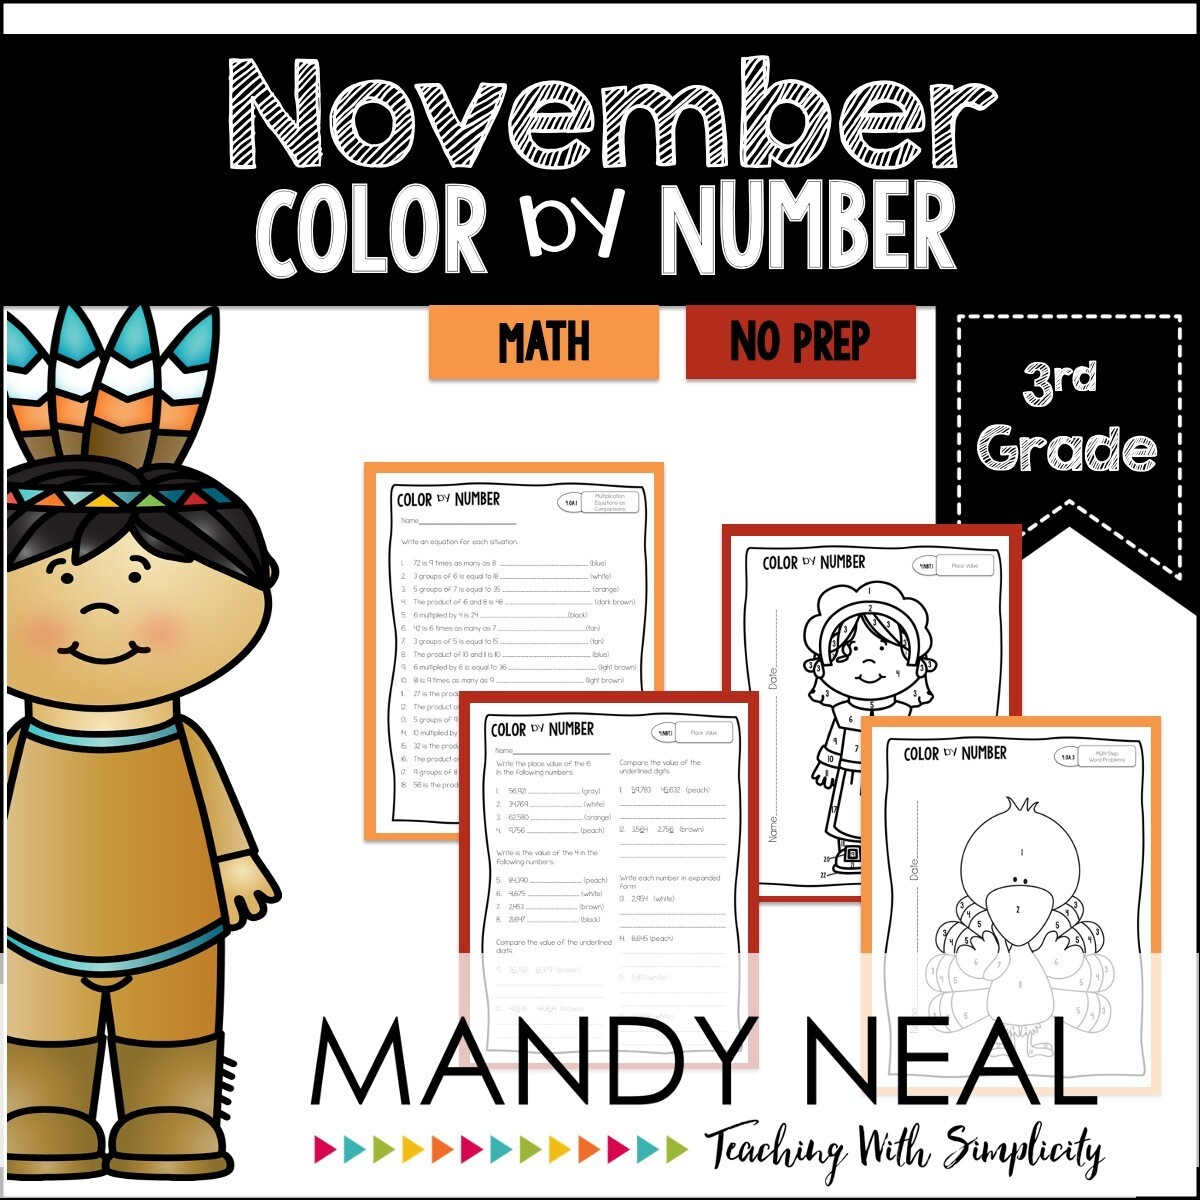 November Color By Number for 3rd Grade Math